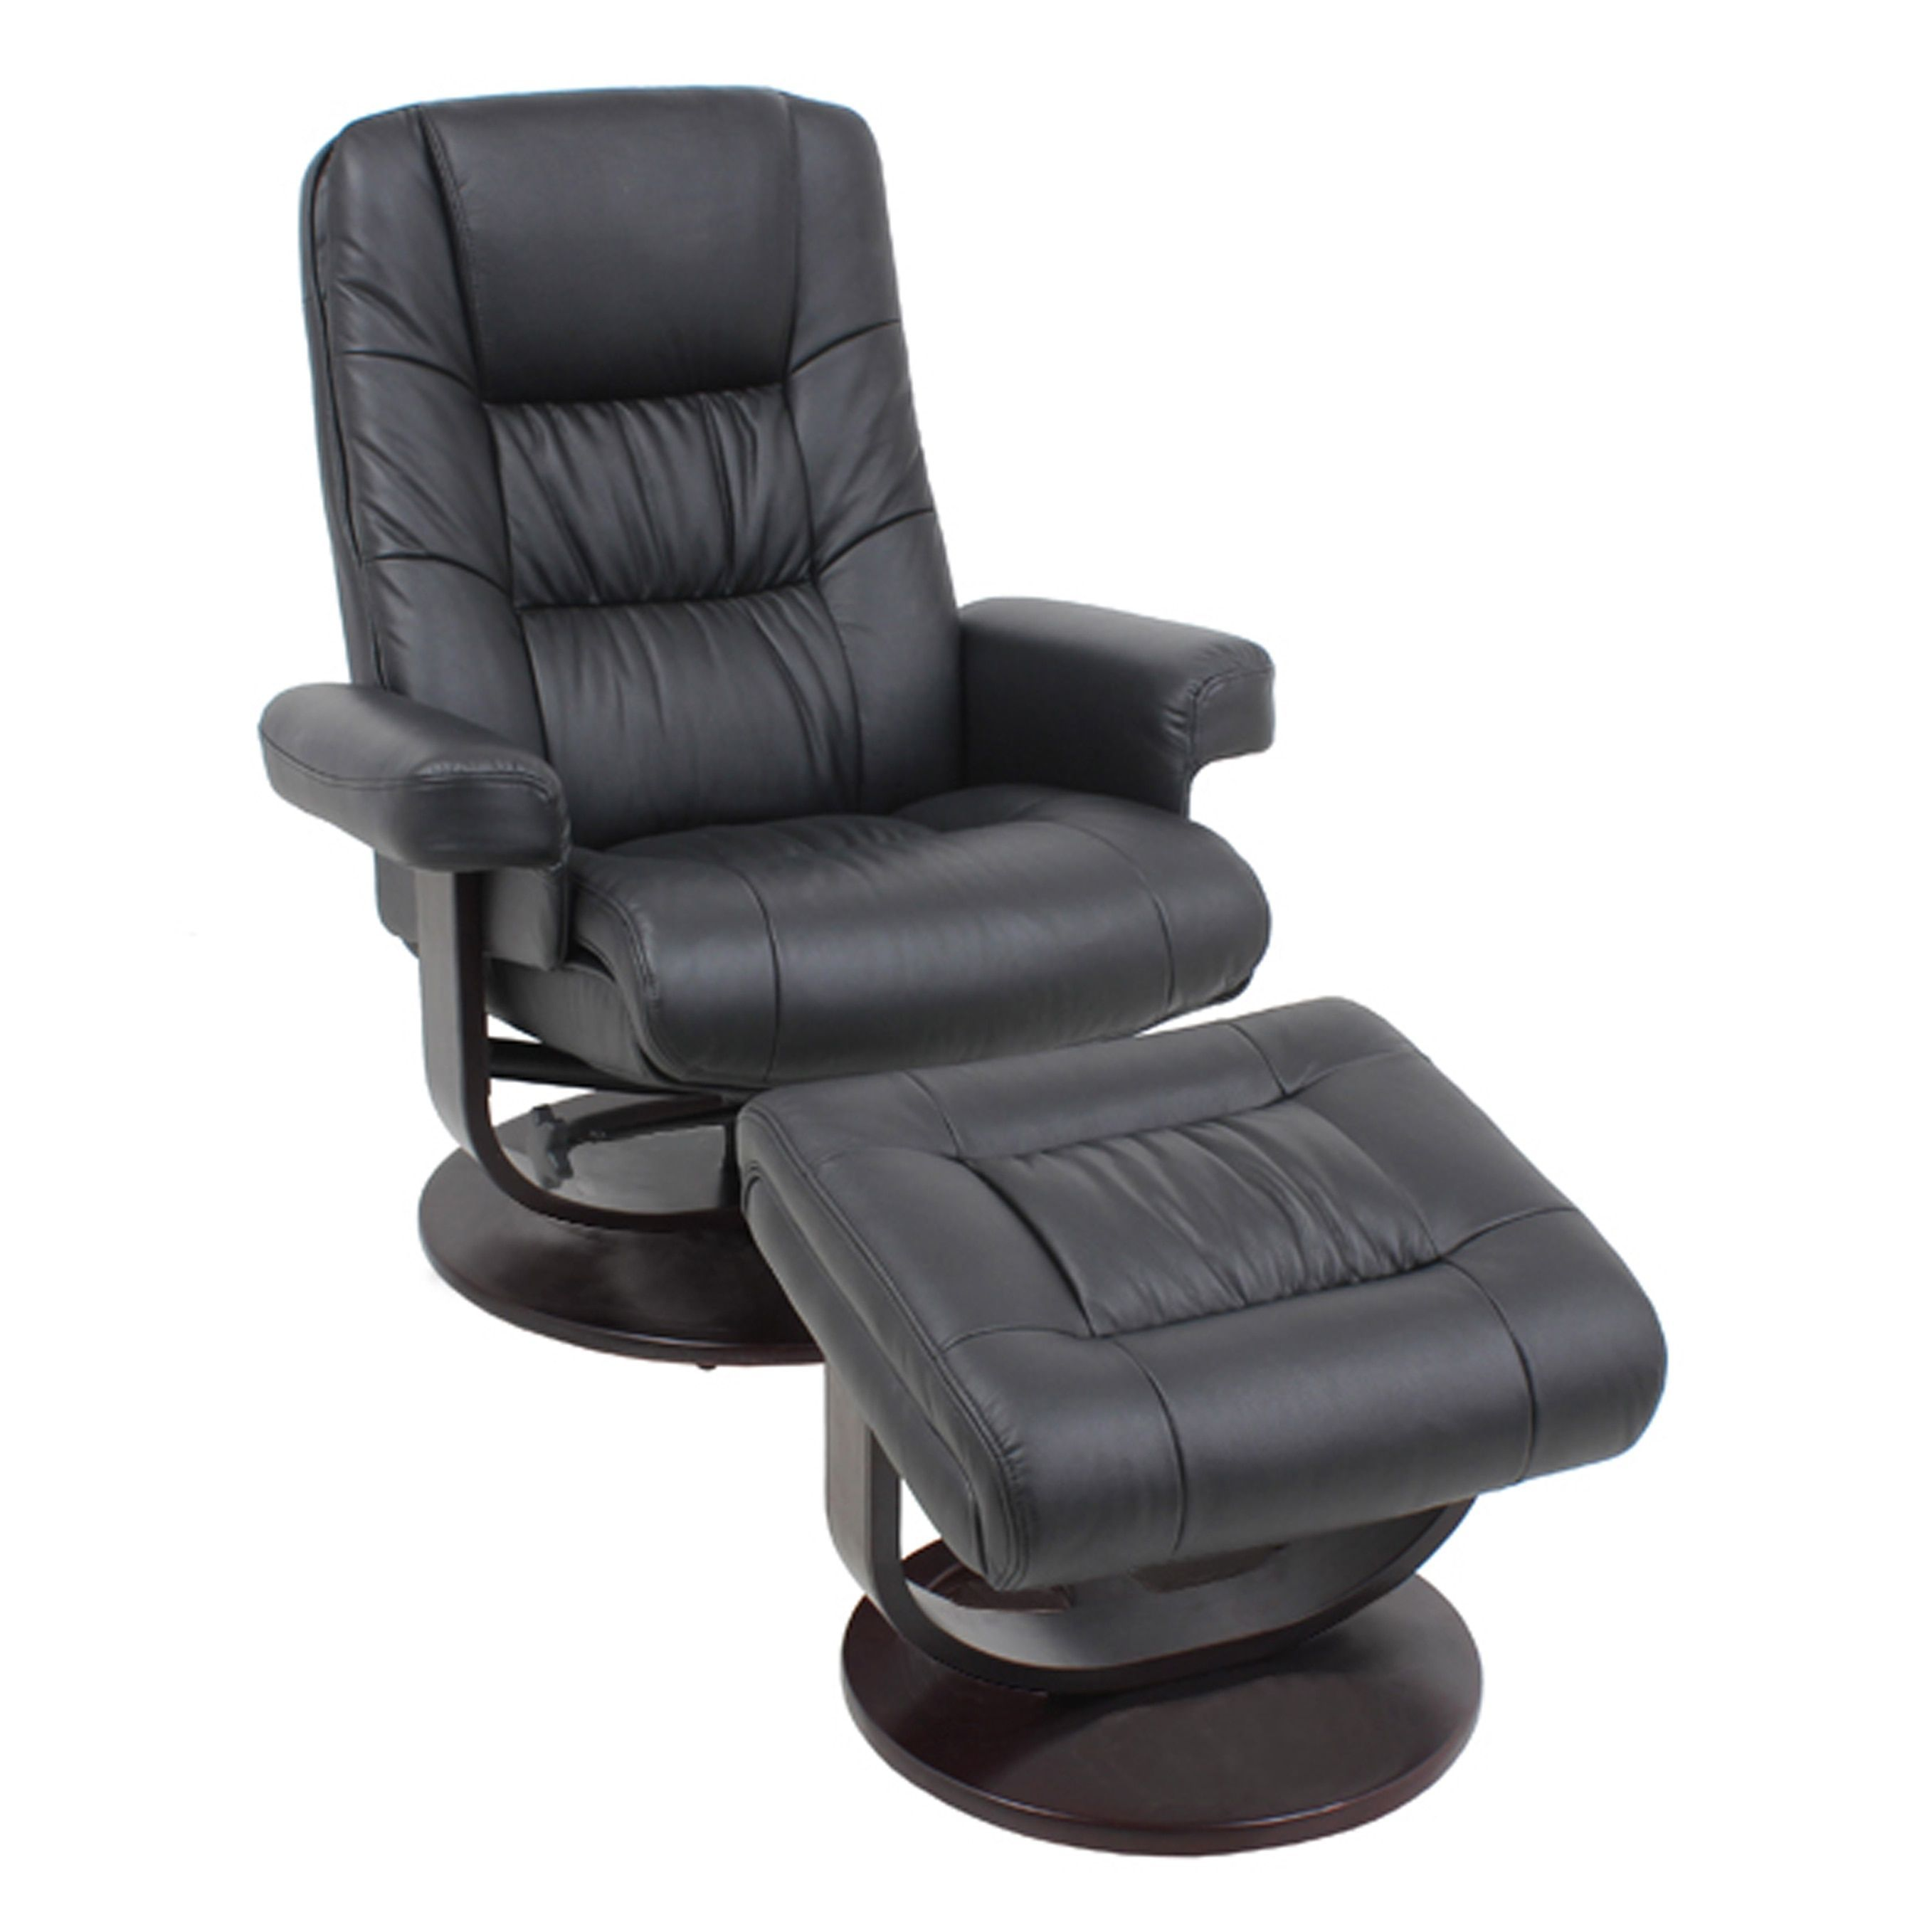 Barcalounger Global Office Furniture Wood And Leather Recliner